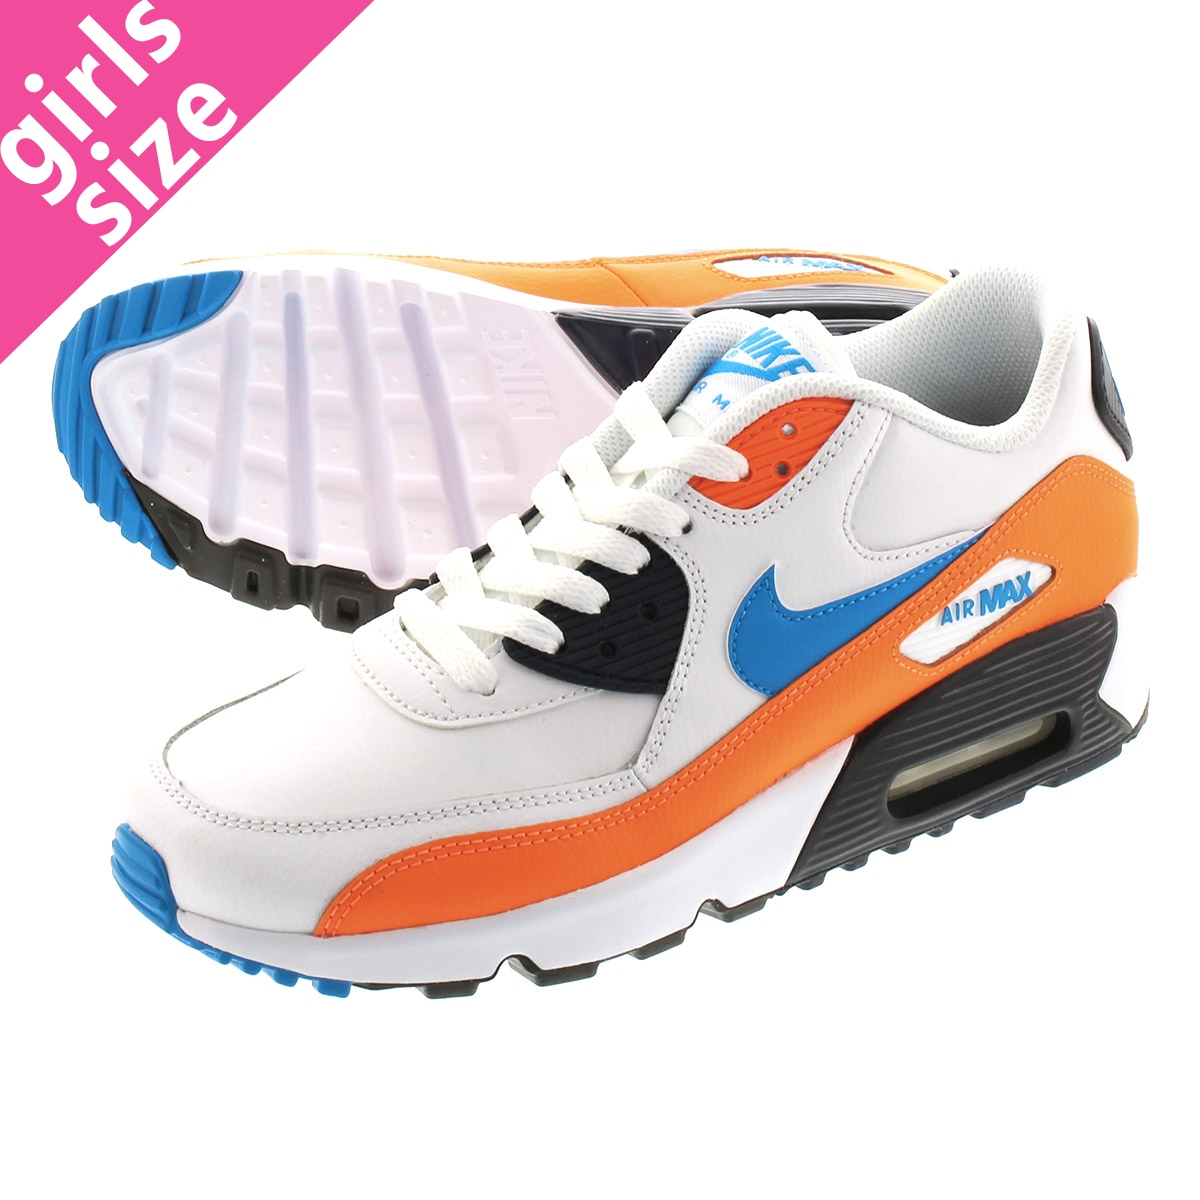 Nike Air Max 90 Leather GS shoes white orange blue